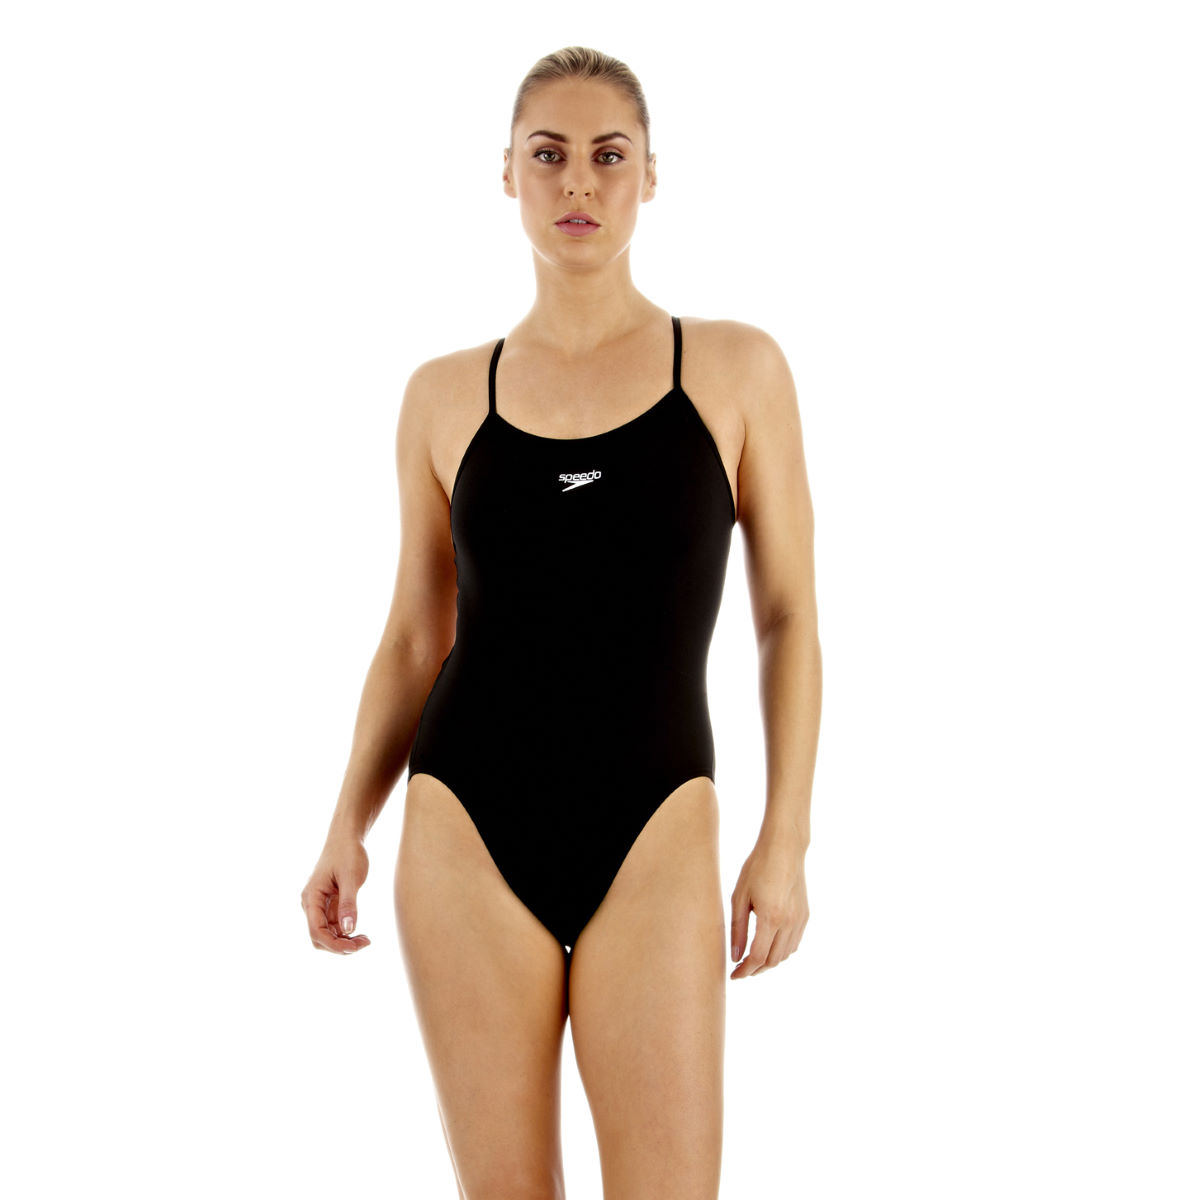 Speedo Women's Endurance Plus Rippleback Swimsuit AW13